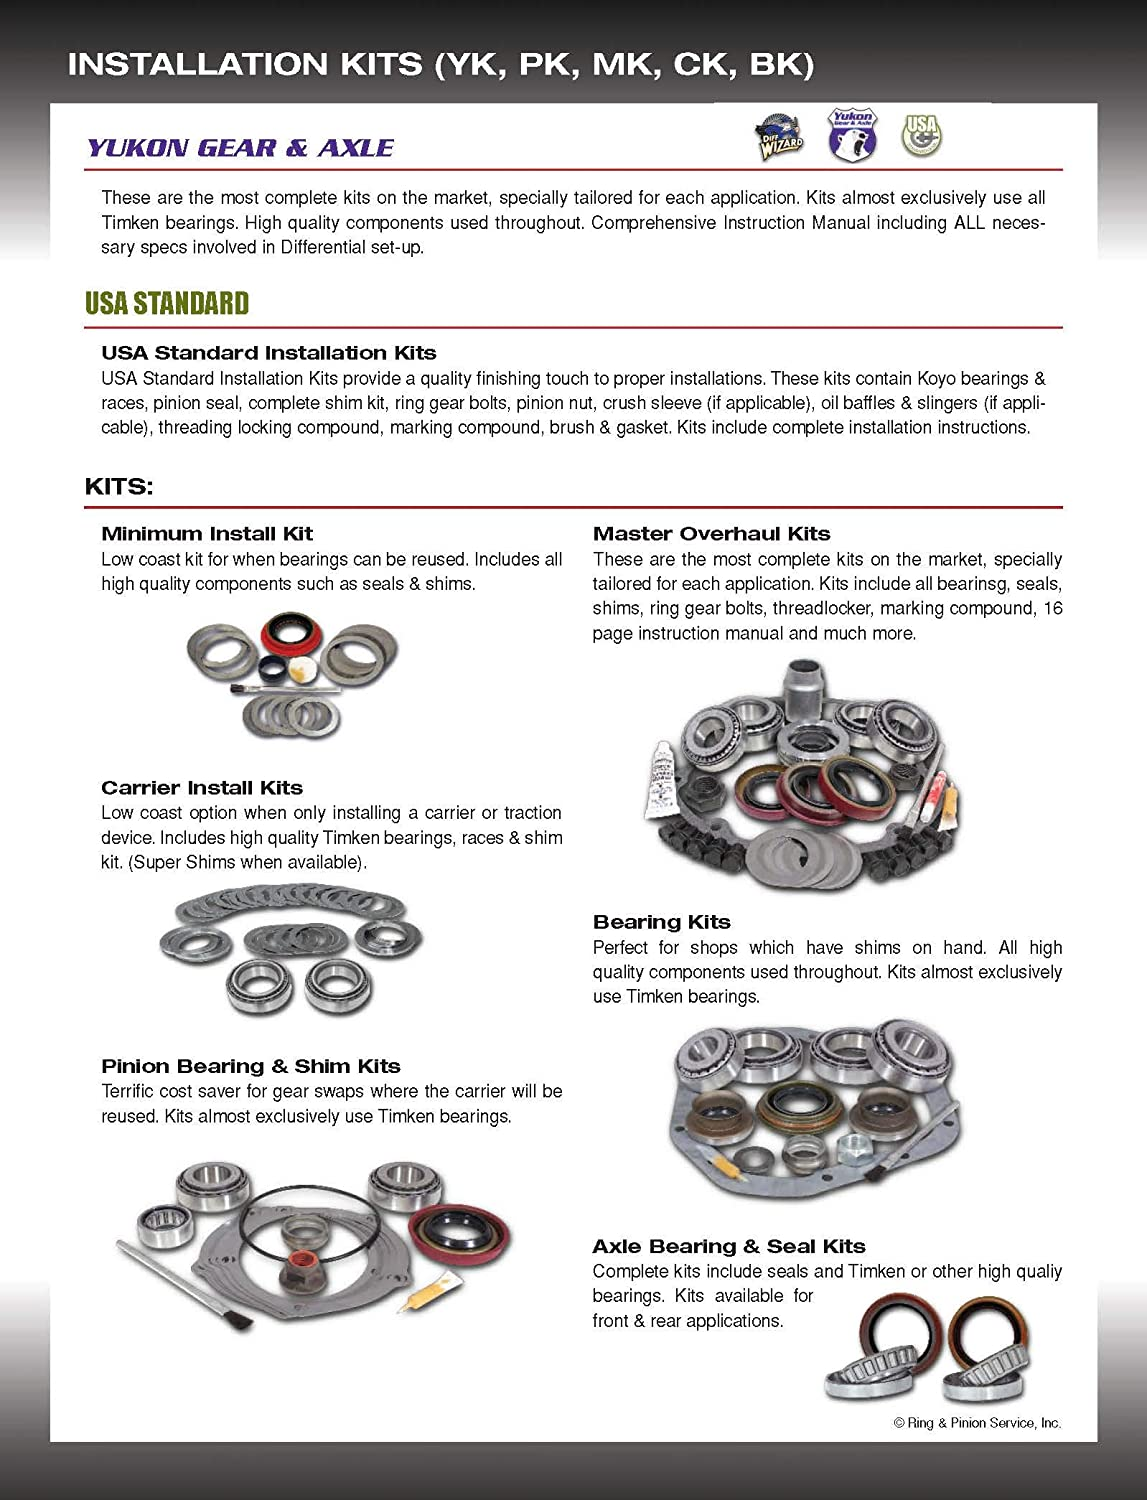 Yukon YPKD44-PC-SM Power Lok Replacement Smooth Clutch Set for Dana 44 Differential